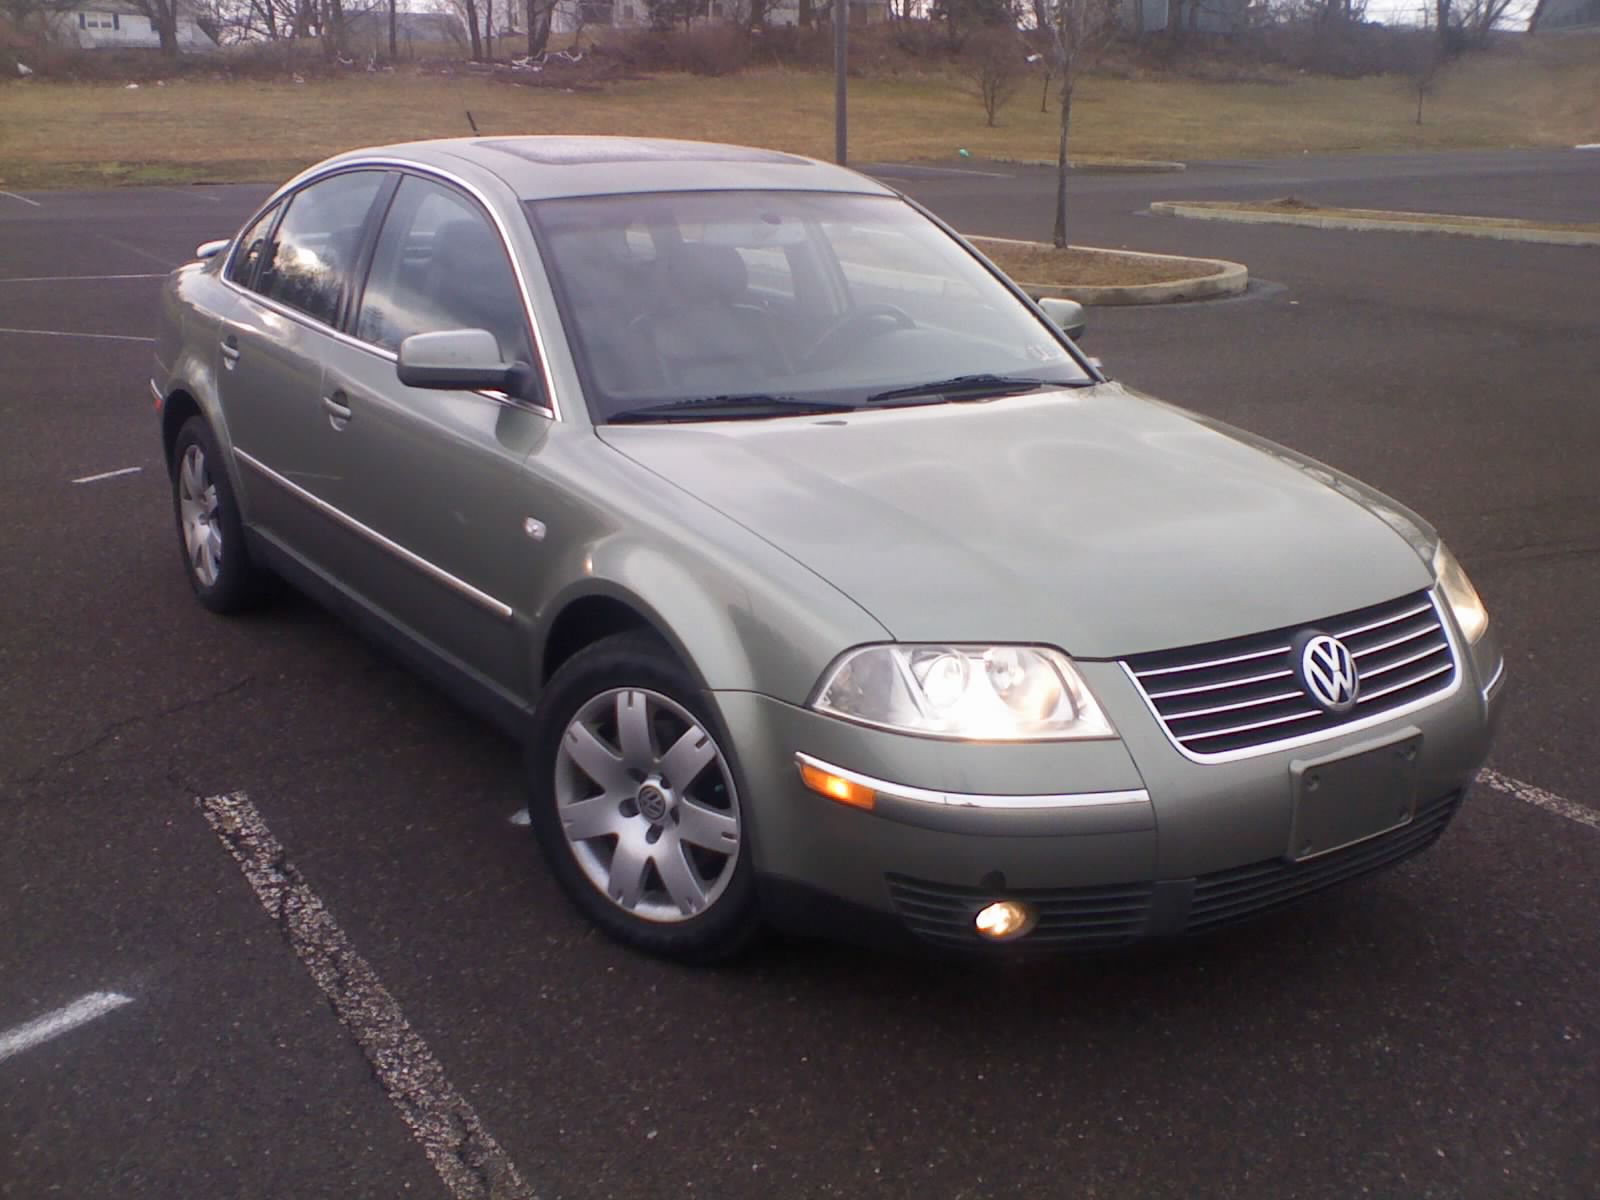 2002 volkswagen passat information and photos zombiedrive rh zombdrive com passat 2002 manual 2002 passat manual transmission fluid